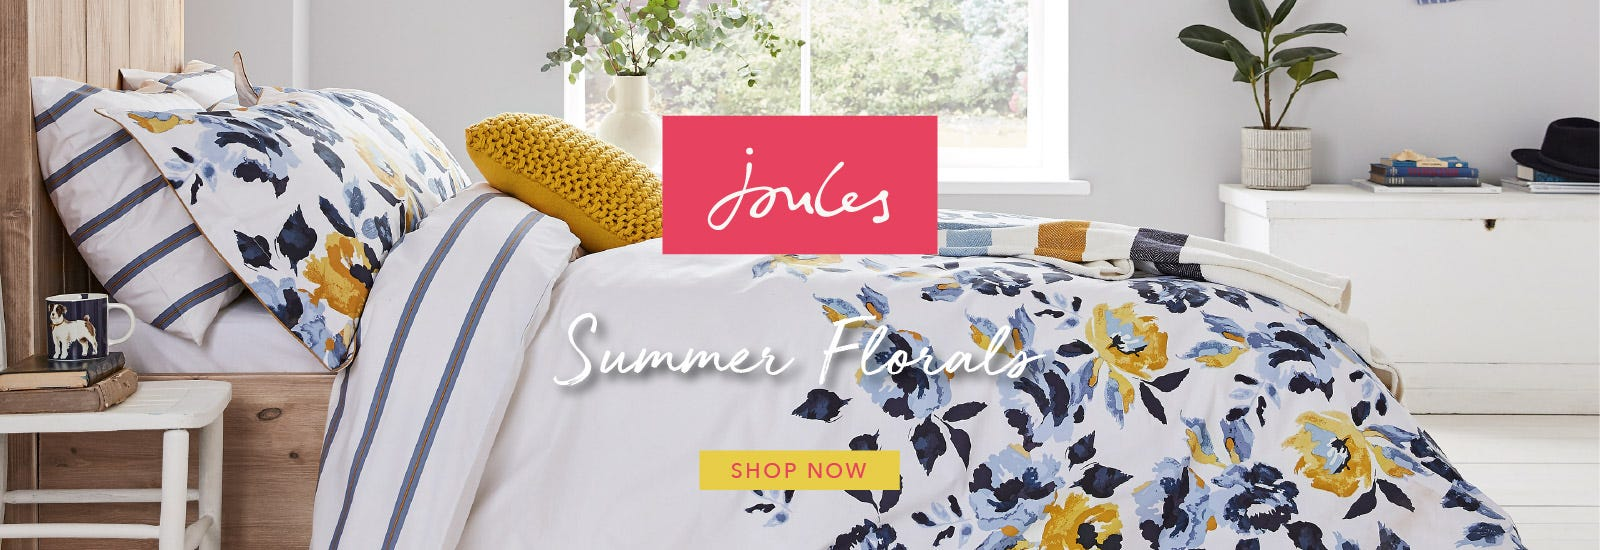 Joules Floral Bedding